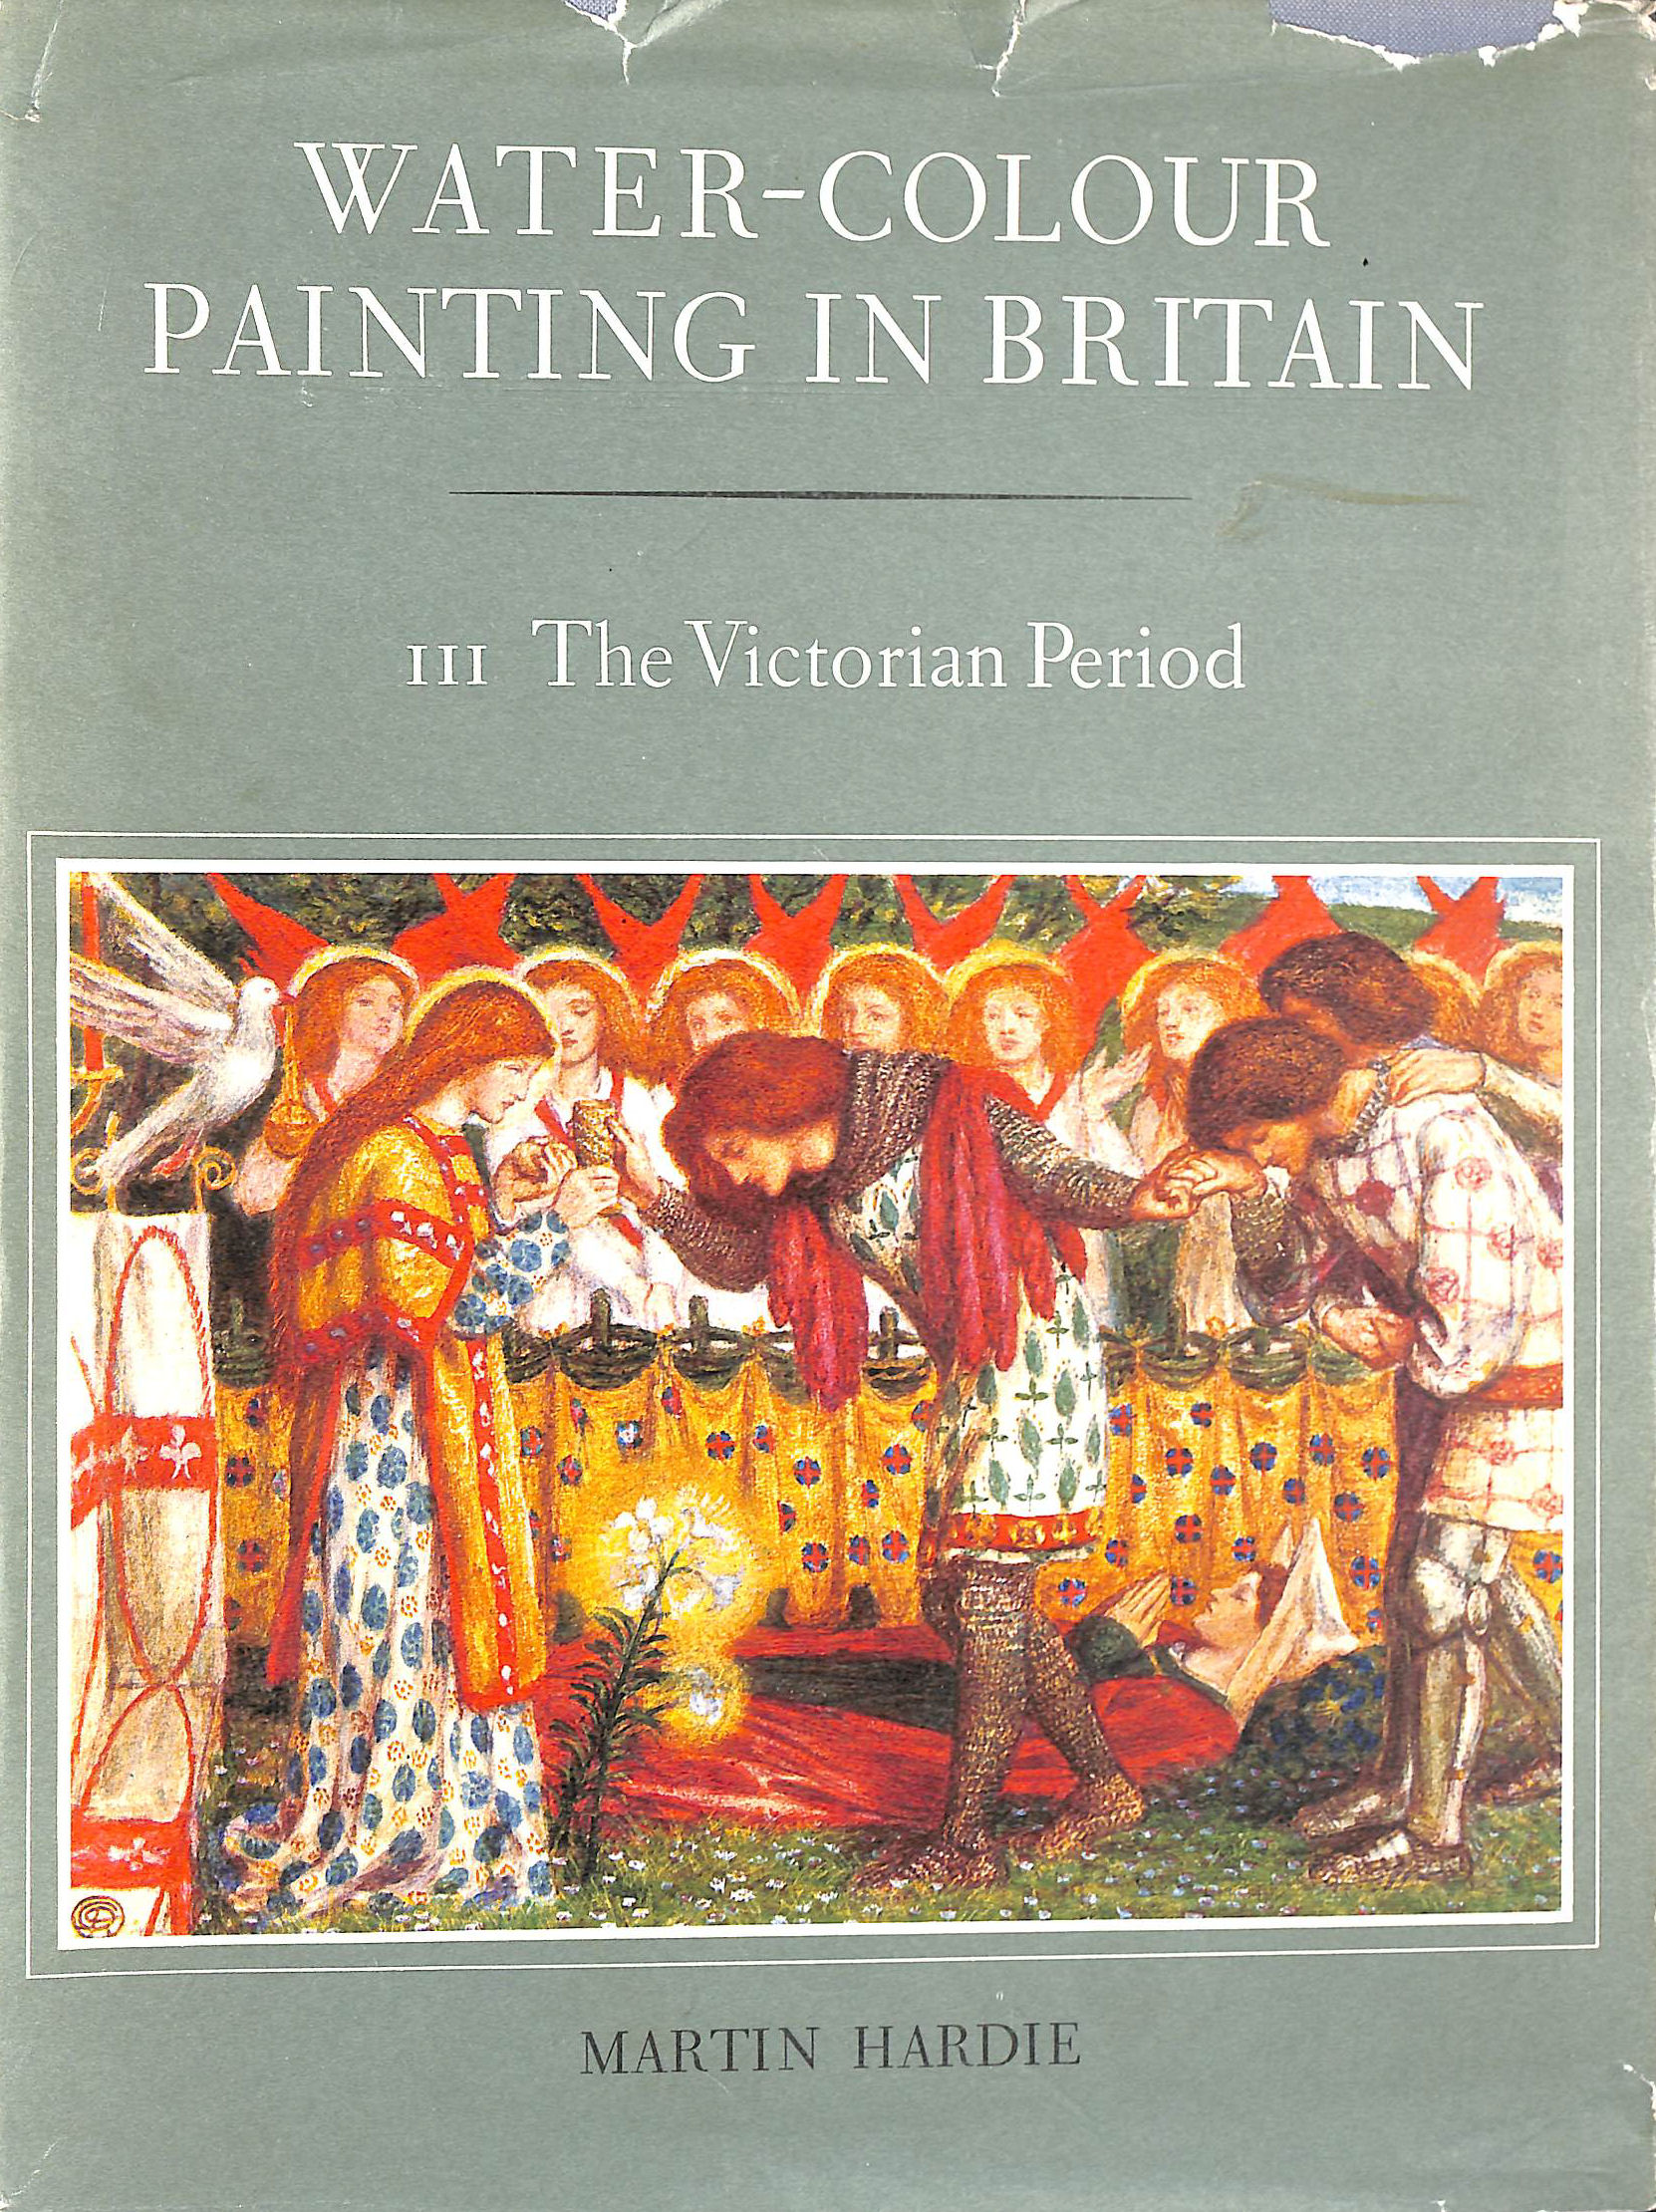 Image for Water-Colour Painting In Britain: Iii: The Victorian Period.